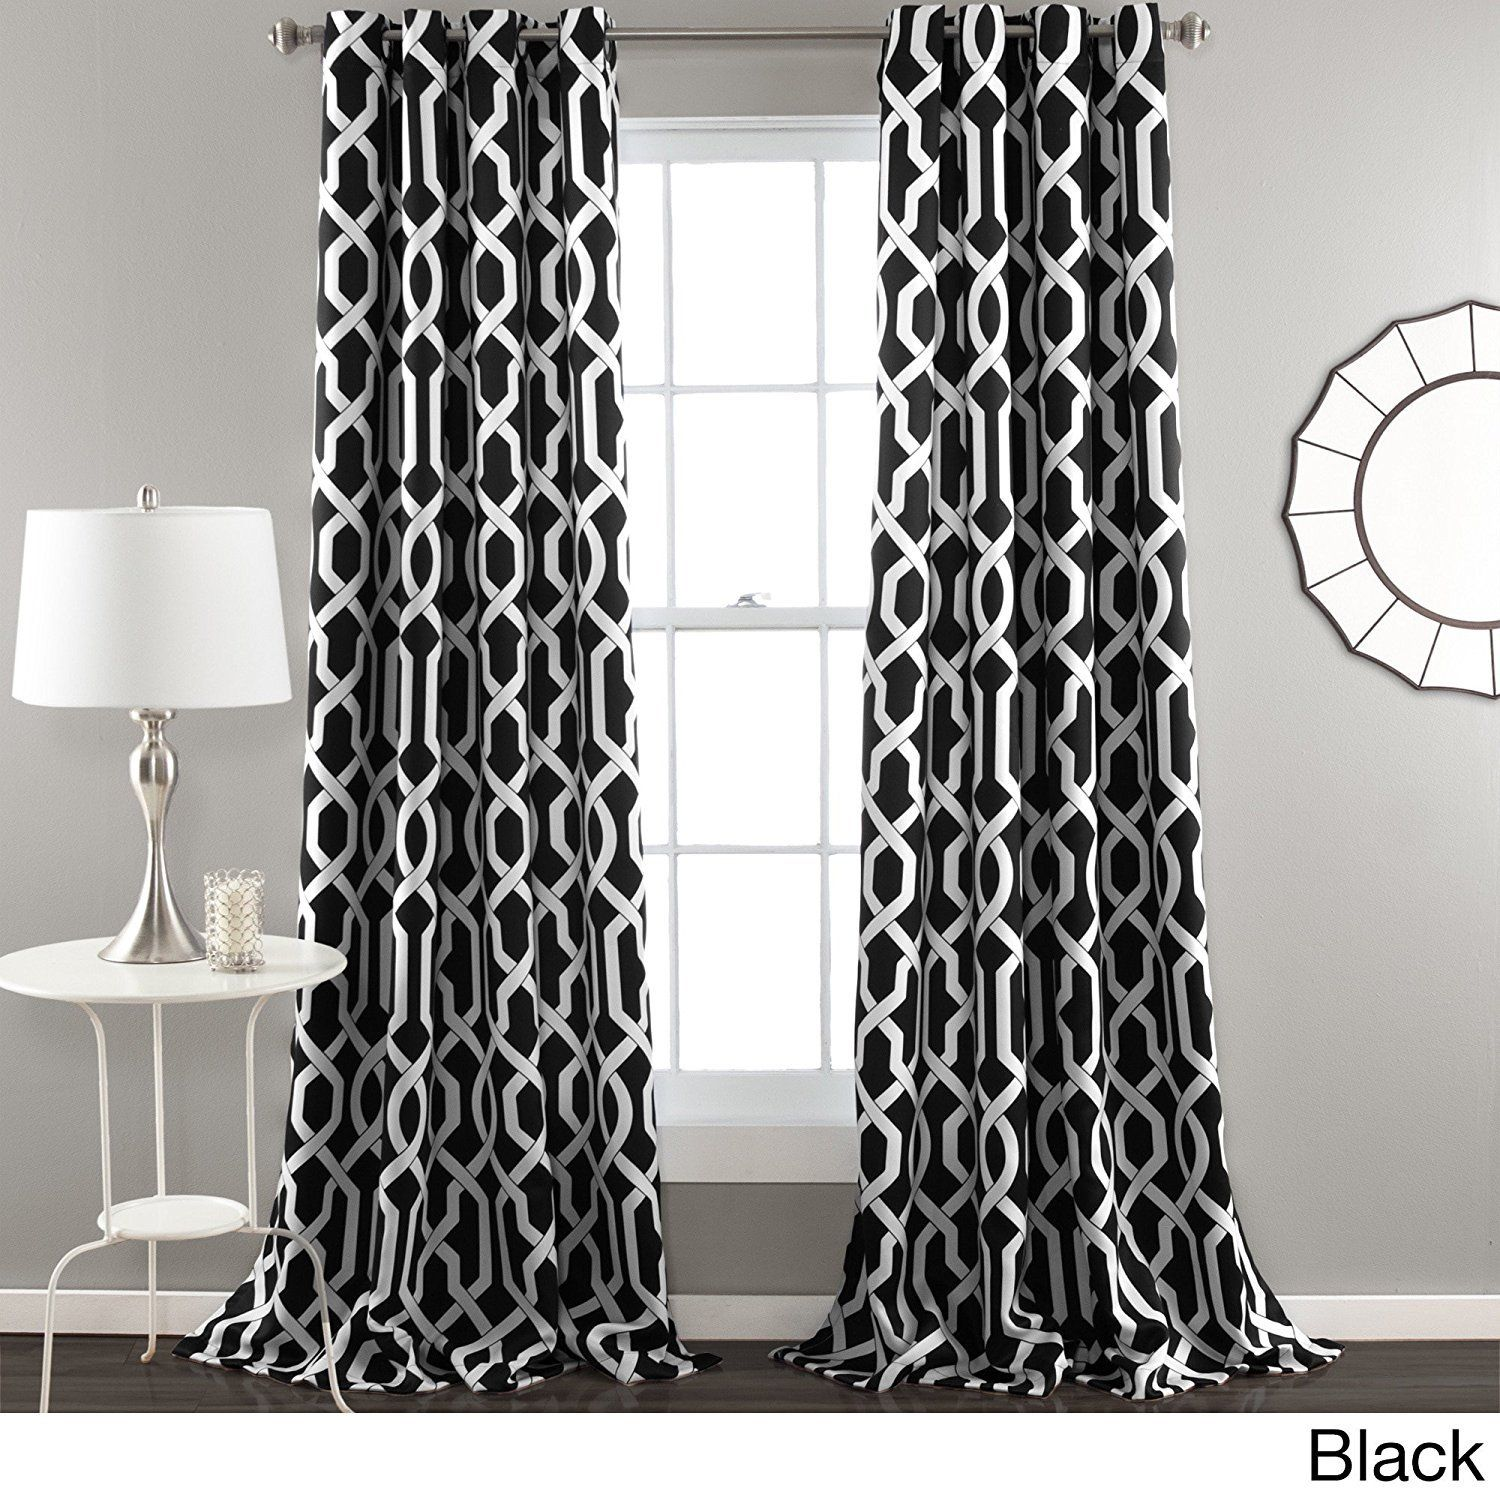 couches of bright painting gray flowers big b wirh white green top lamp elegant room full wooden living eye glass table size carpet and color an minimalist black with drapes in monochrome catching fur curtains red a